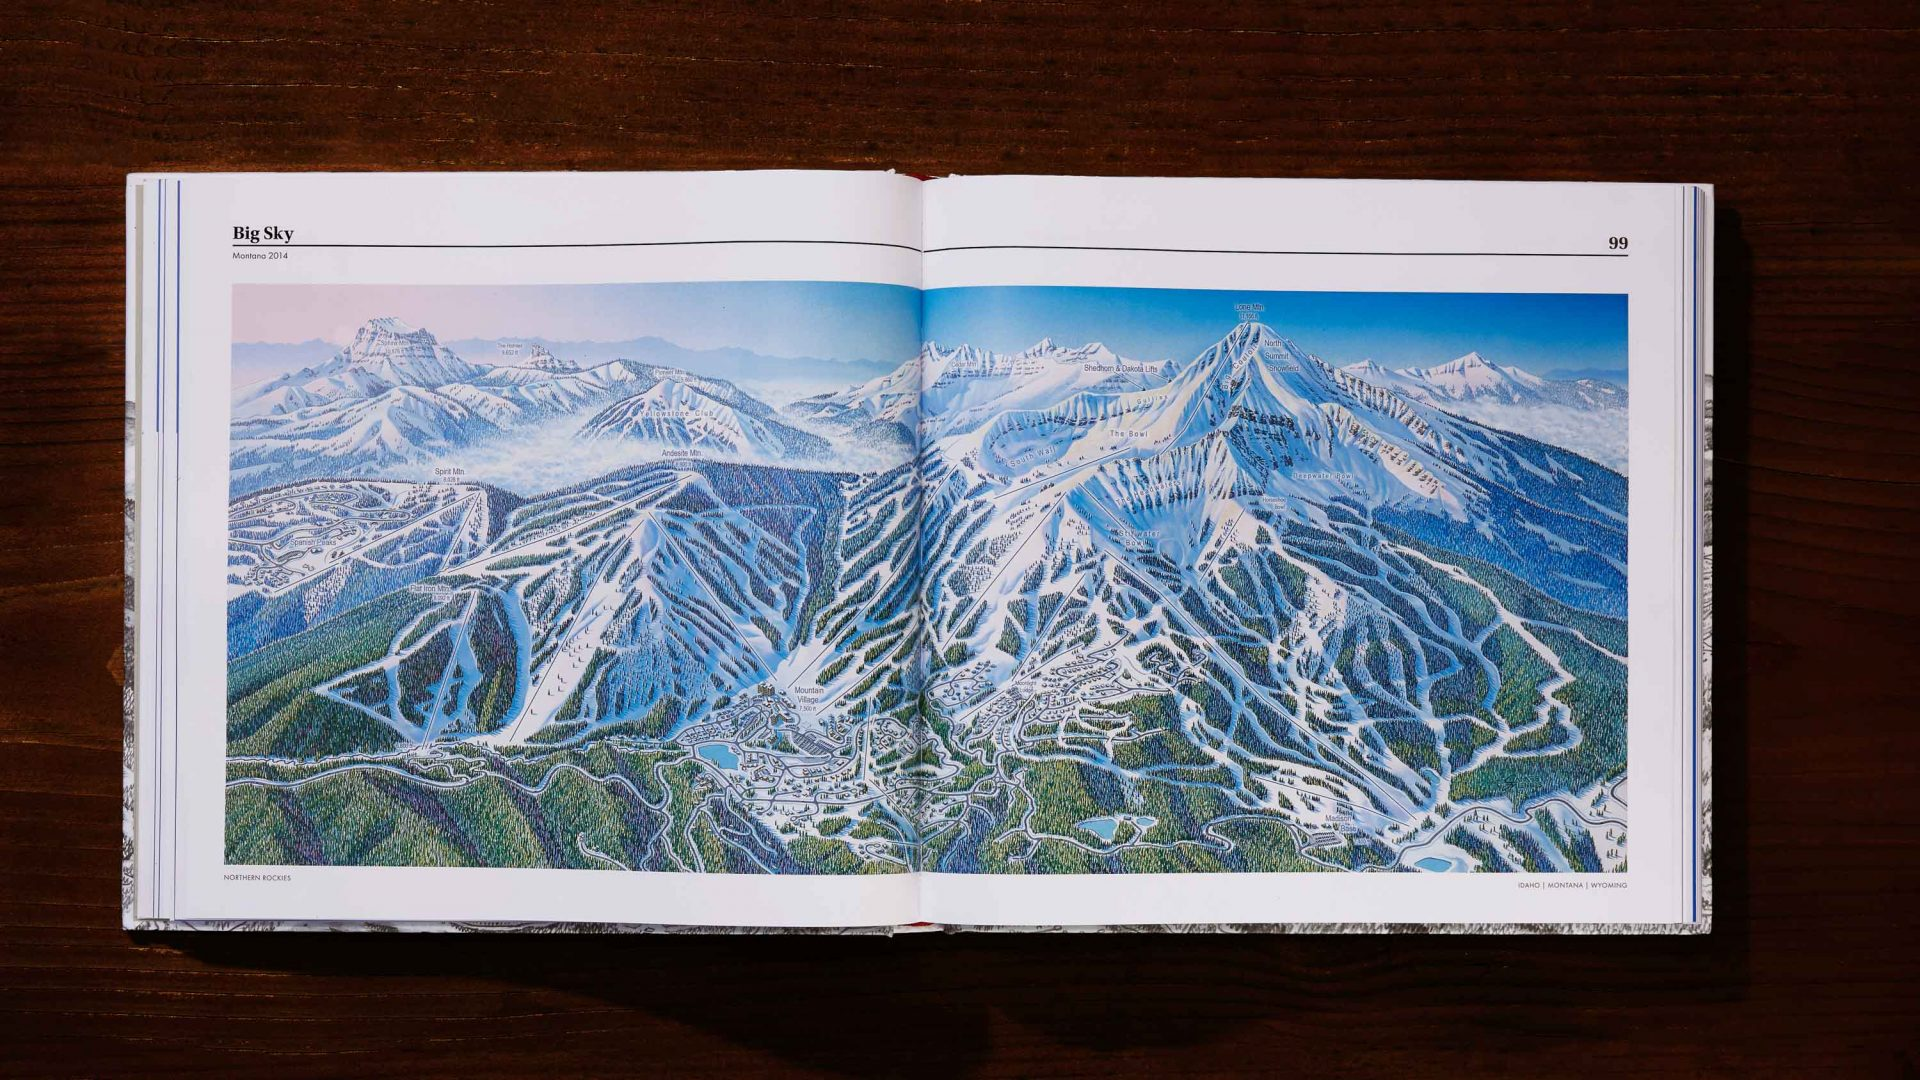 A book open showing one of the illustrated ski slopes.